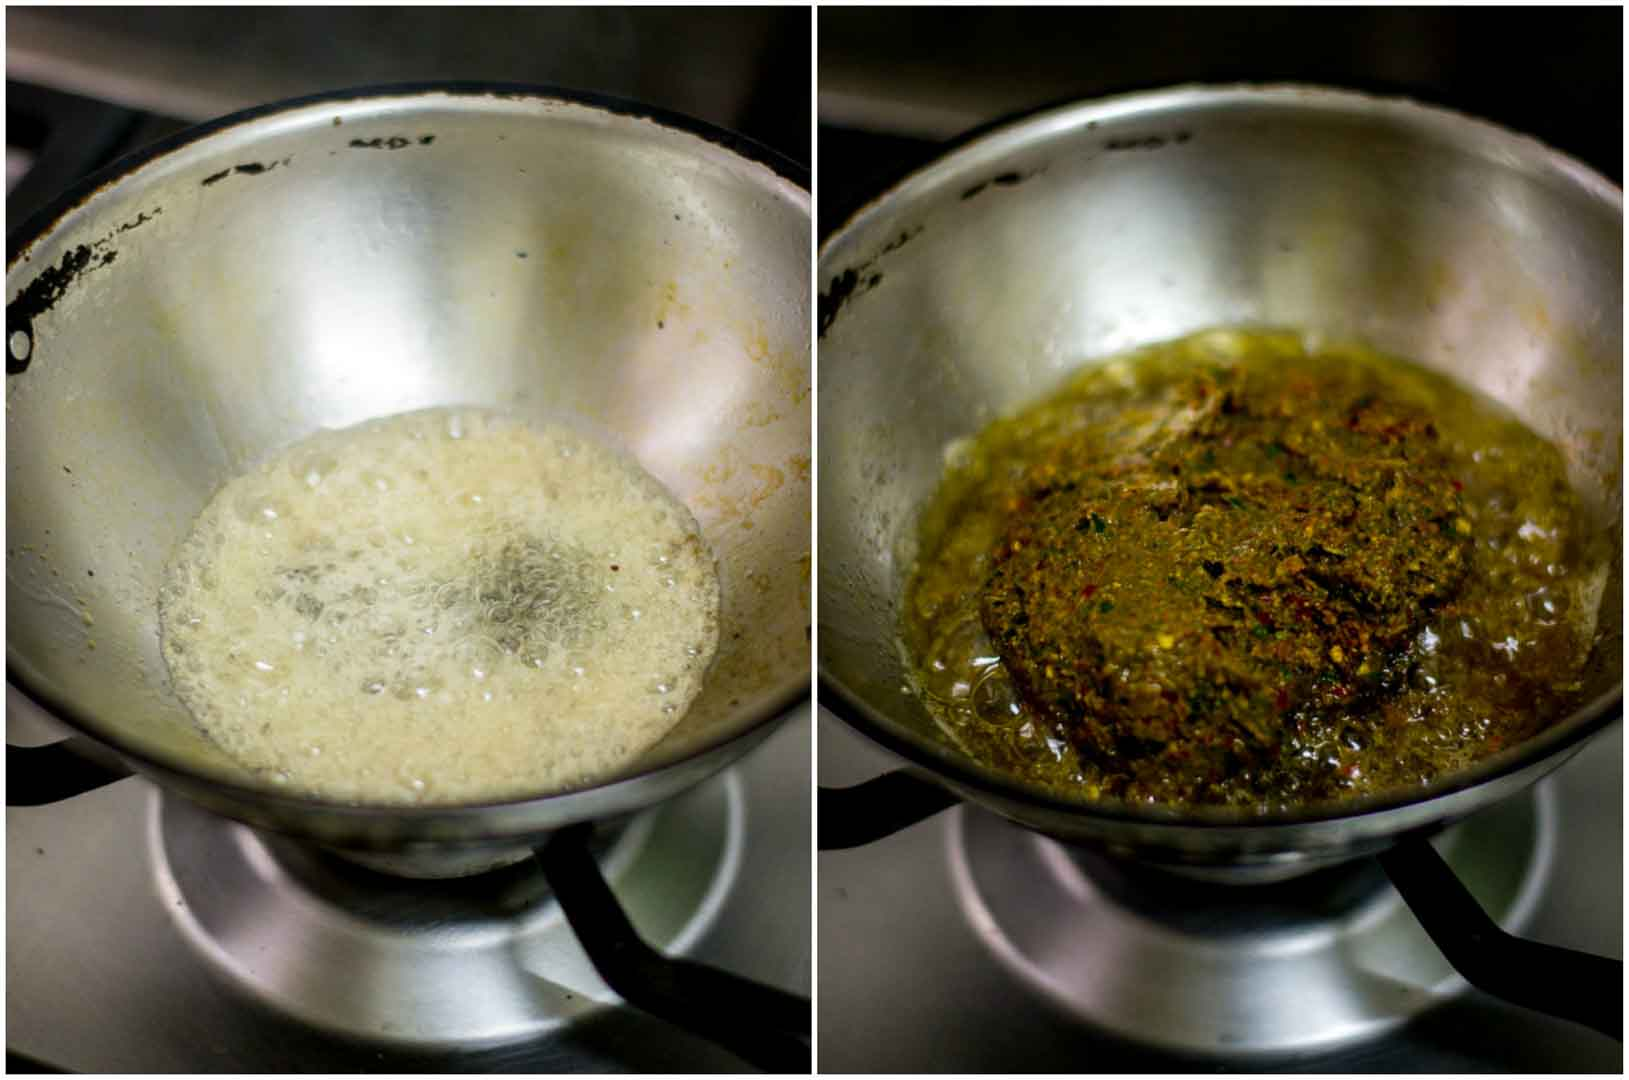 fc53fc6b1ba5 ... gingely oil) in a pan and when the oil is hot